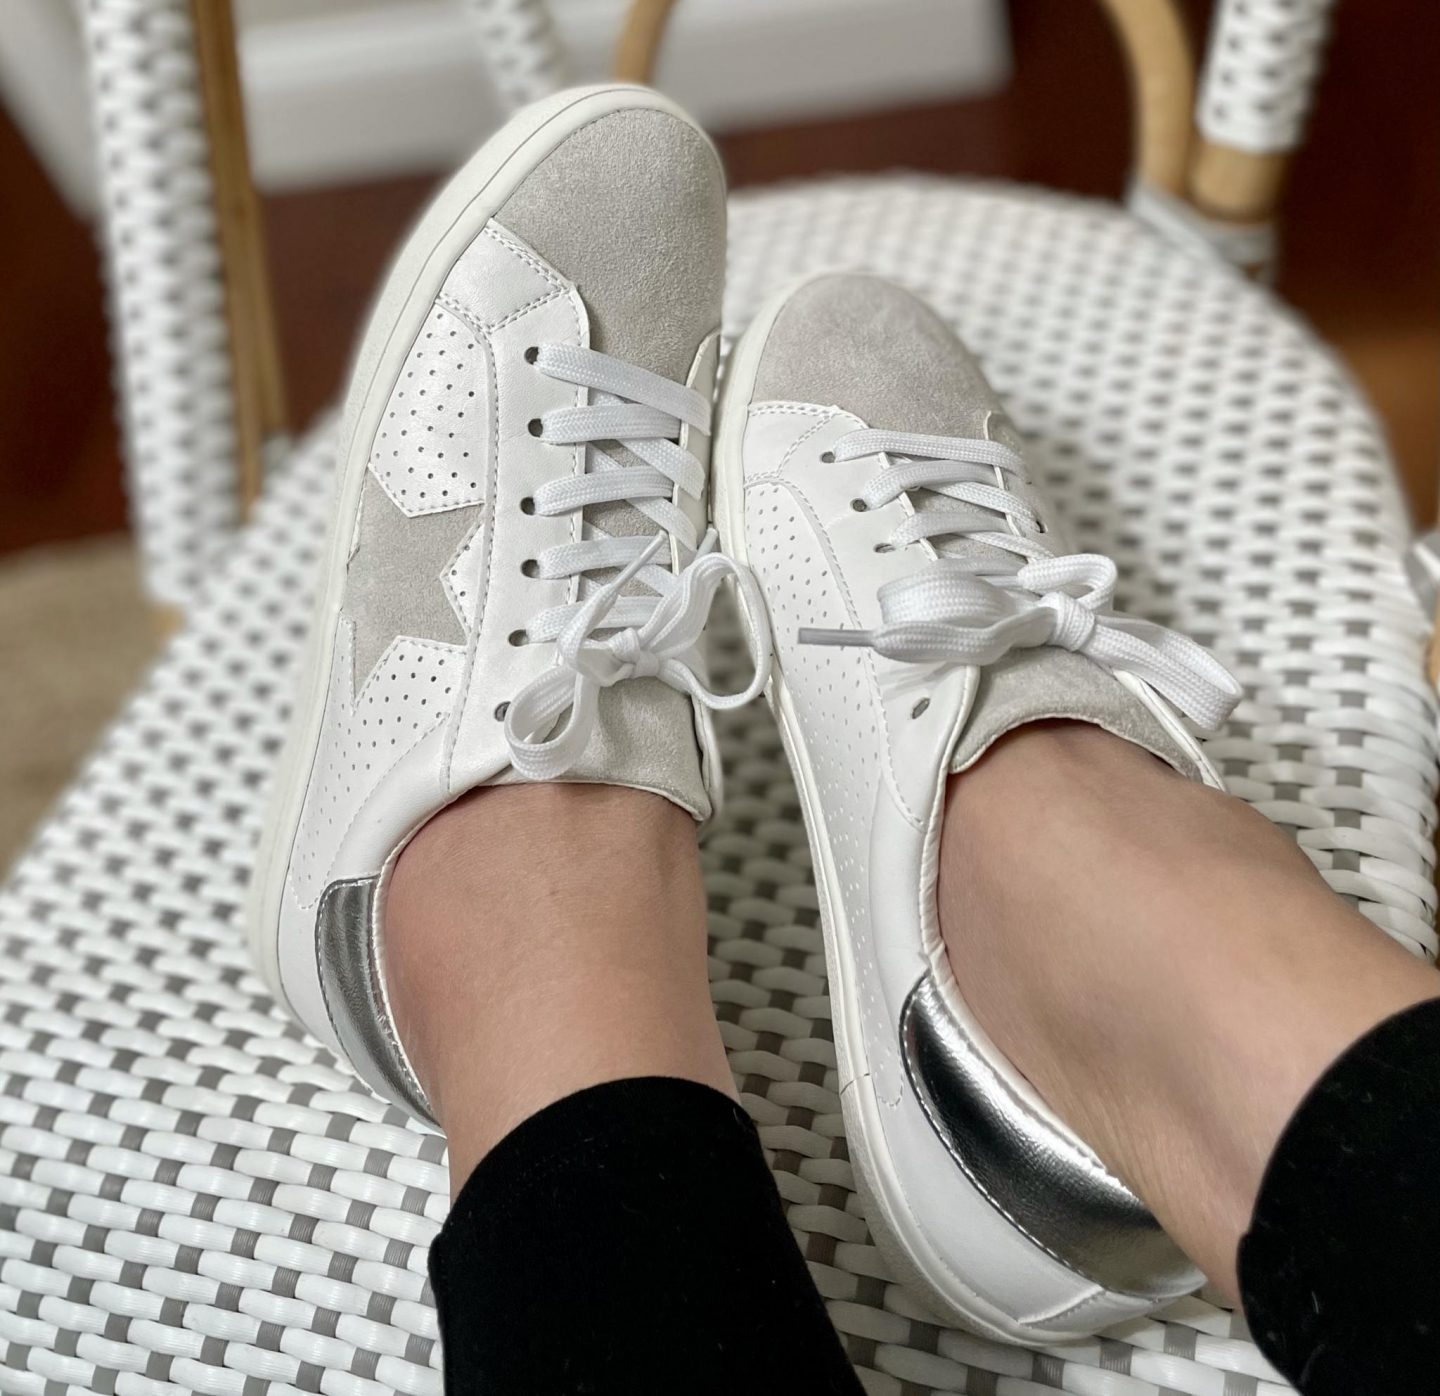 Madden Girl Lace Up Suede Star Sneakers